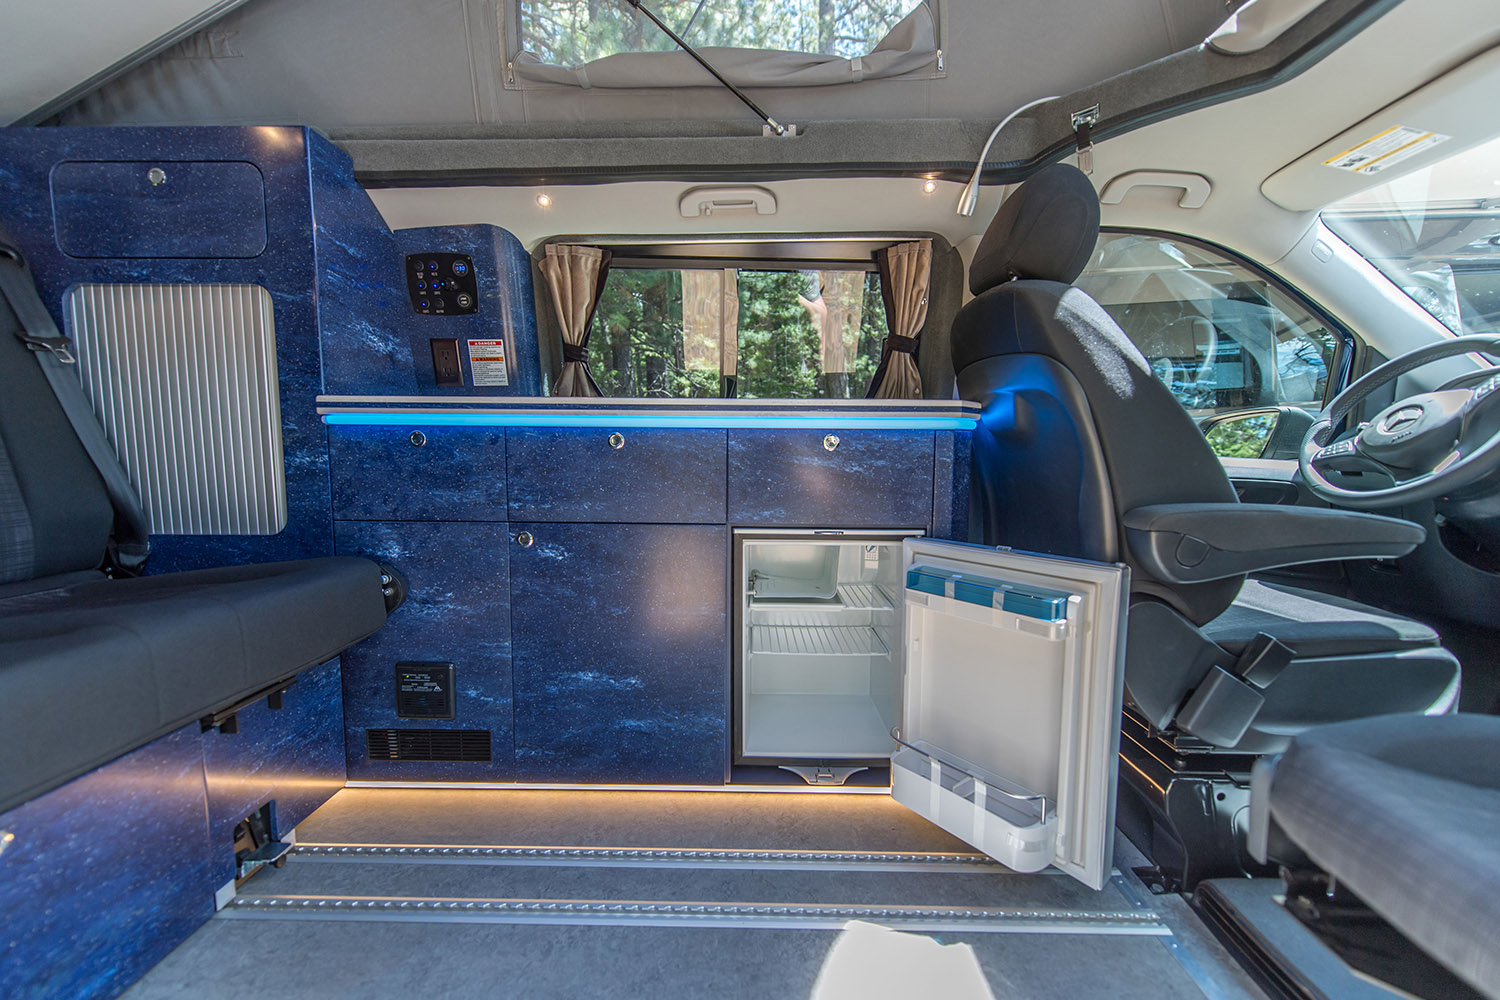 Mercedes Van Interior - growswedes com -